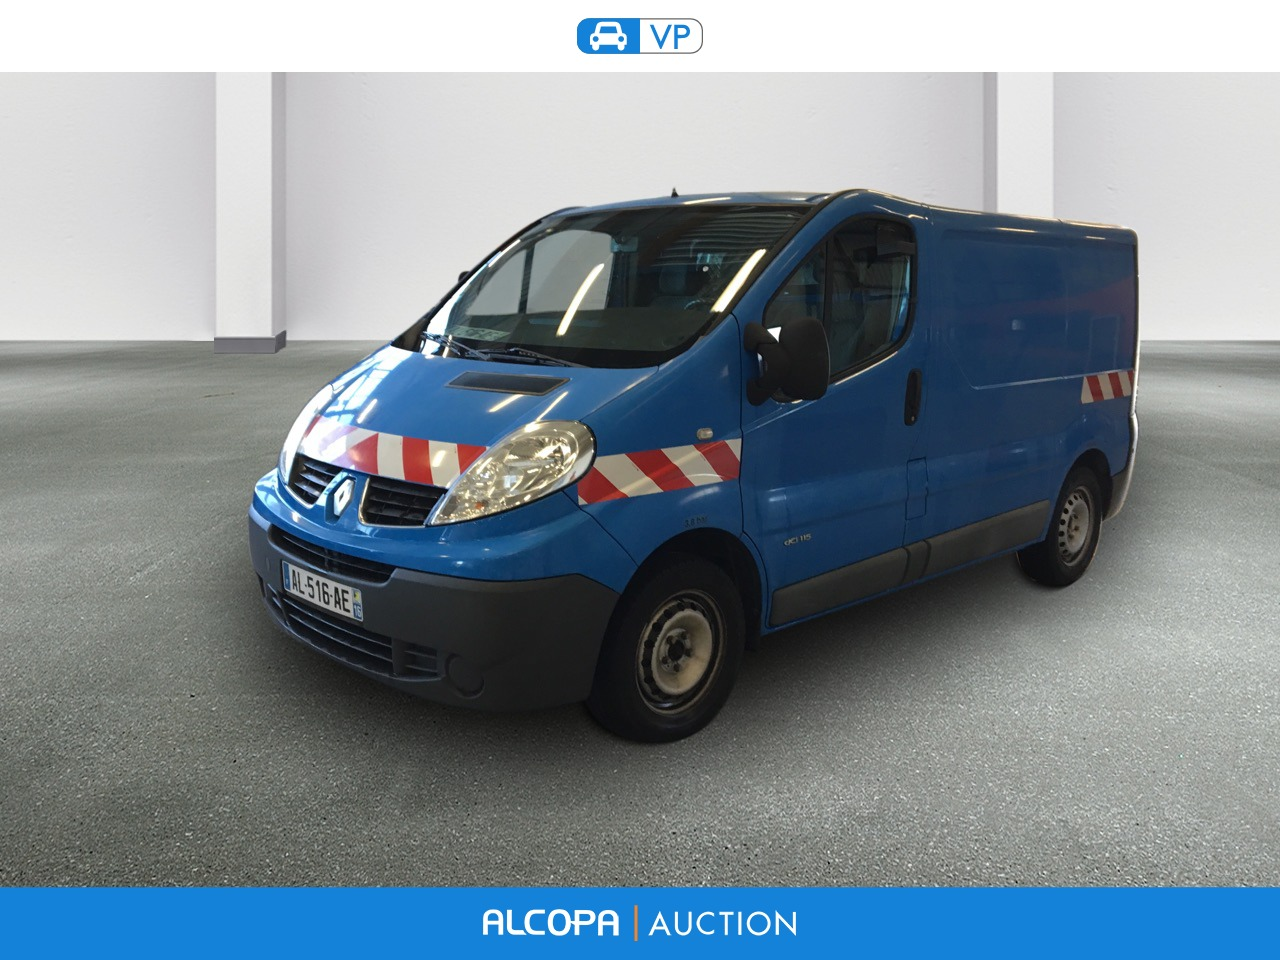 renault trafic fourgon trafic fgn 2 0 dci 115 l1h1 1200 kg confort alcopa auction. Black Bedroom Furniture Sets. Home Design Ideas